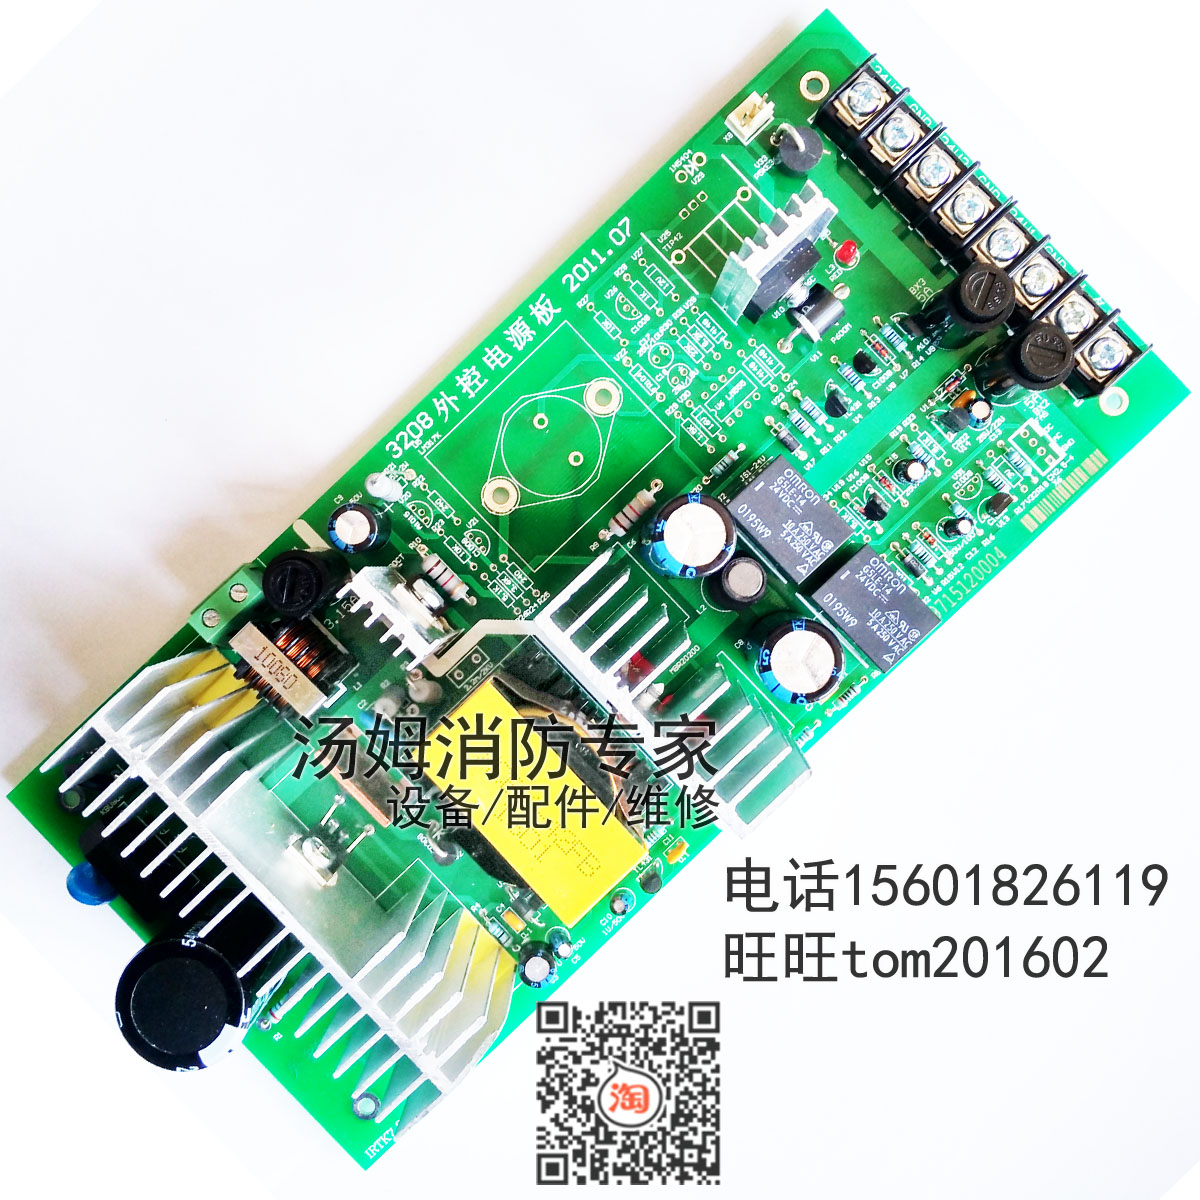 New Shanghai Songjiang JB-3208G B T external control power supply board No charging Feifan Electronics Non-maintenance